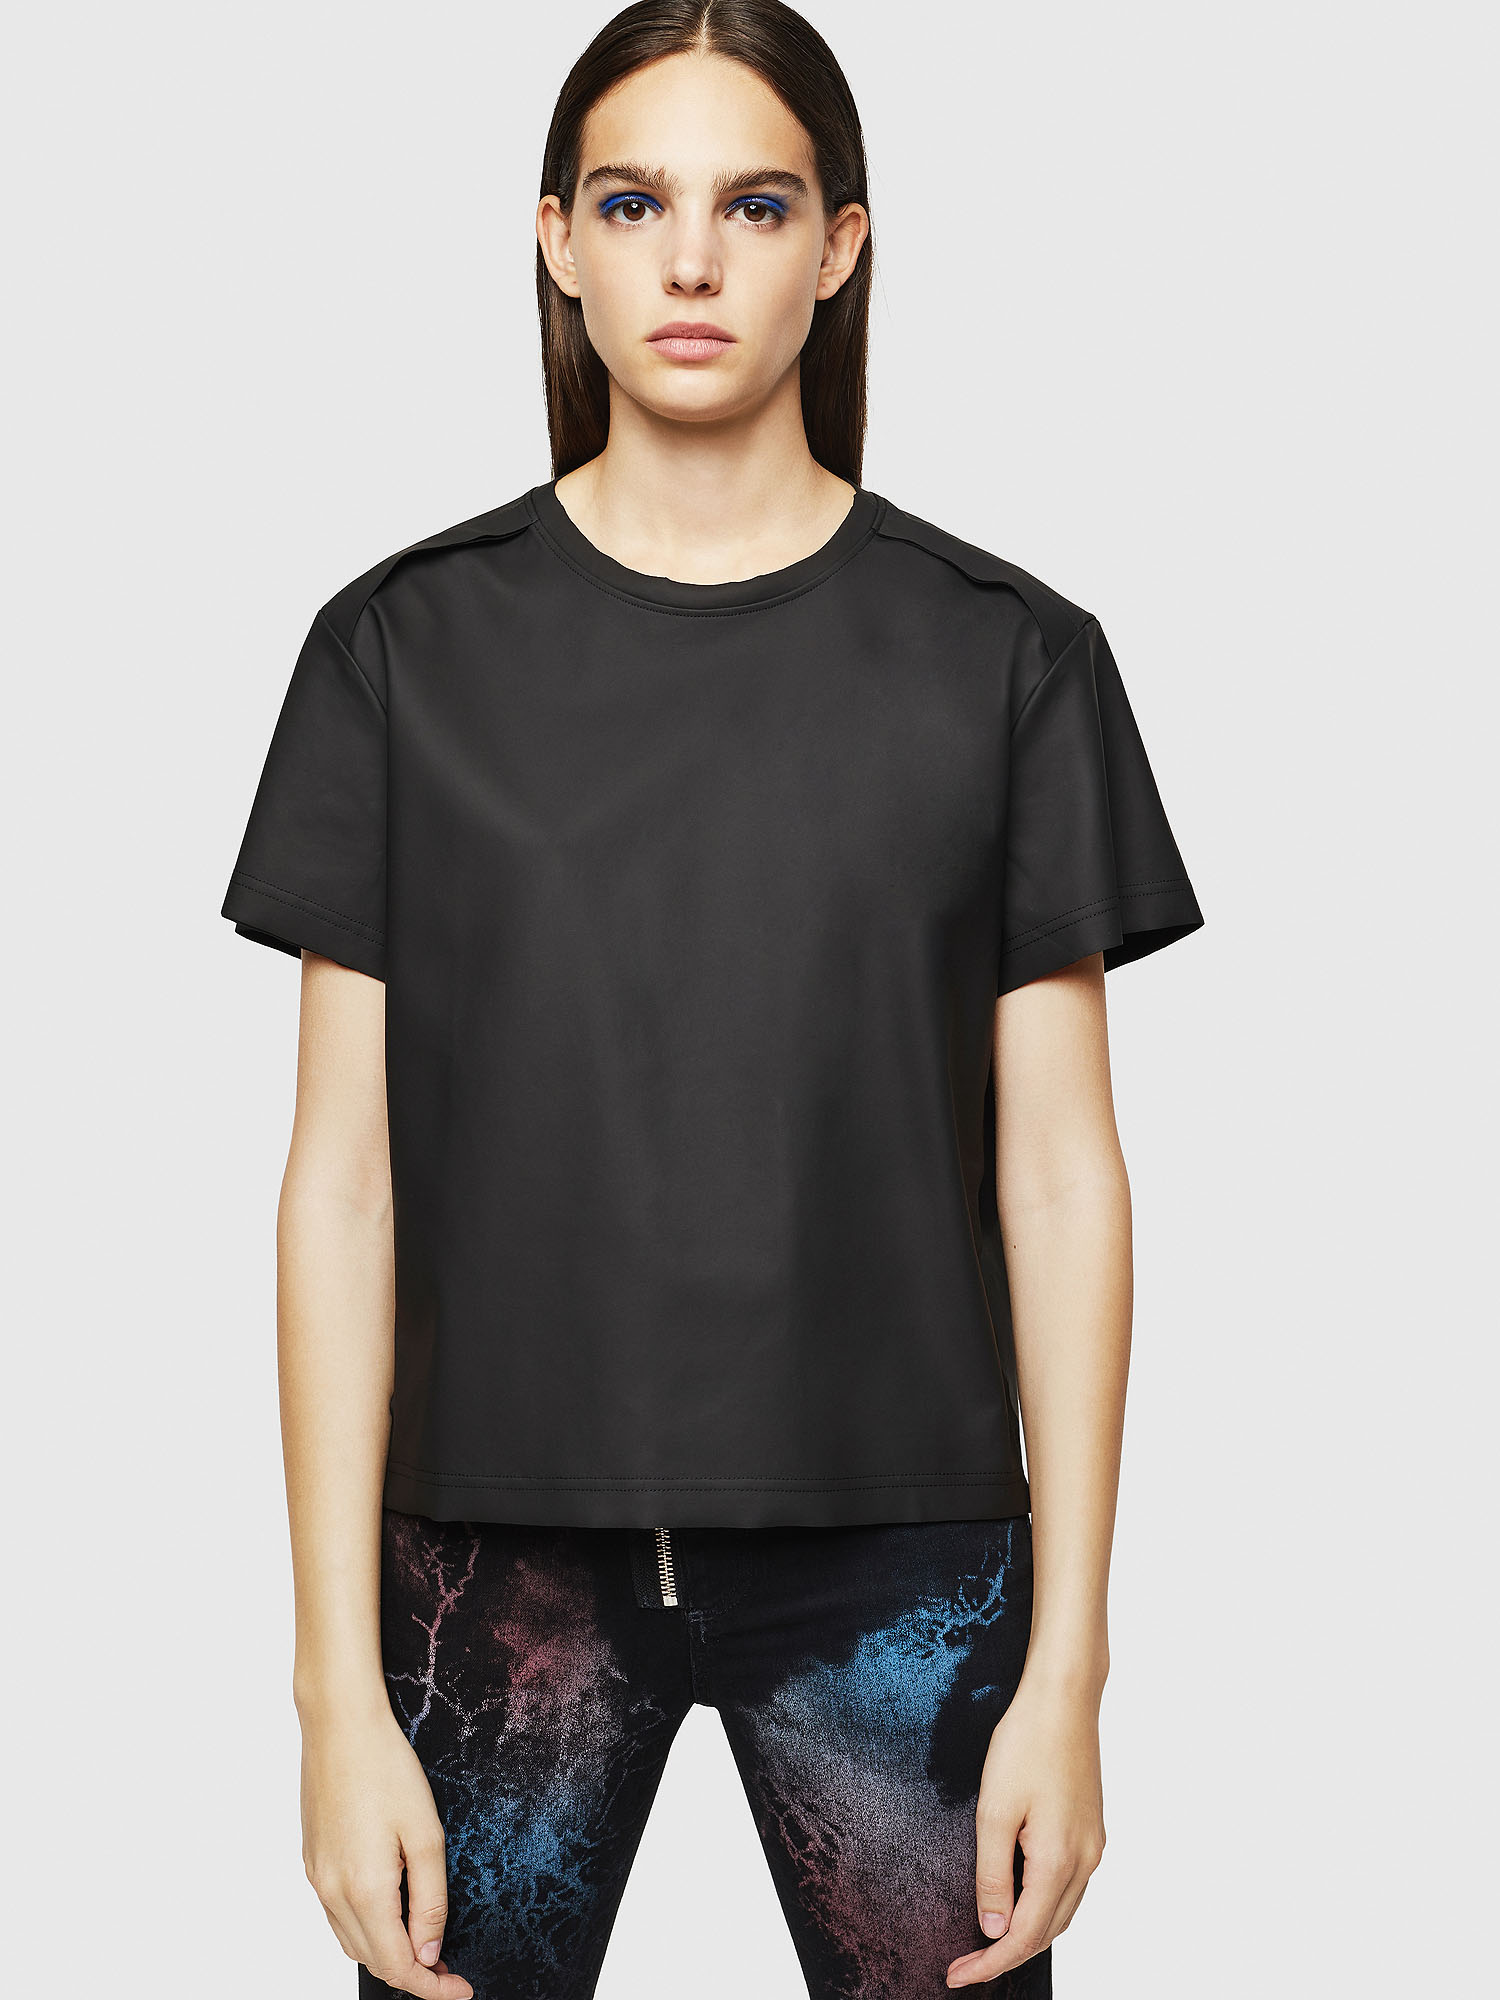 Diesel - T-DARYL,  - T-Shirts - Image 1